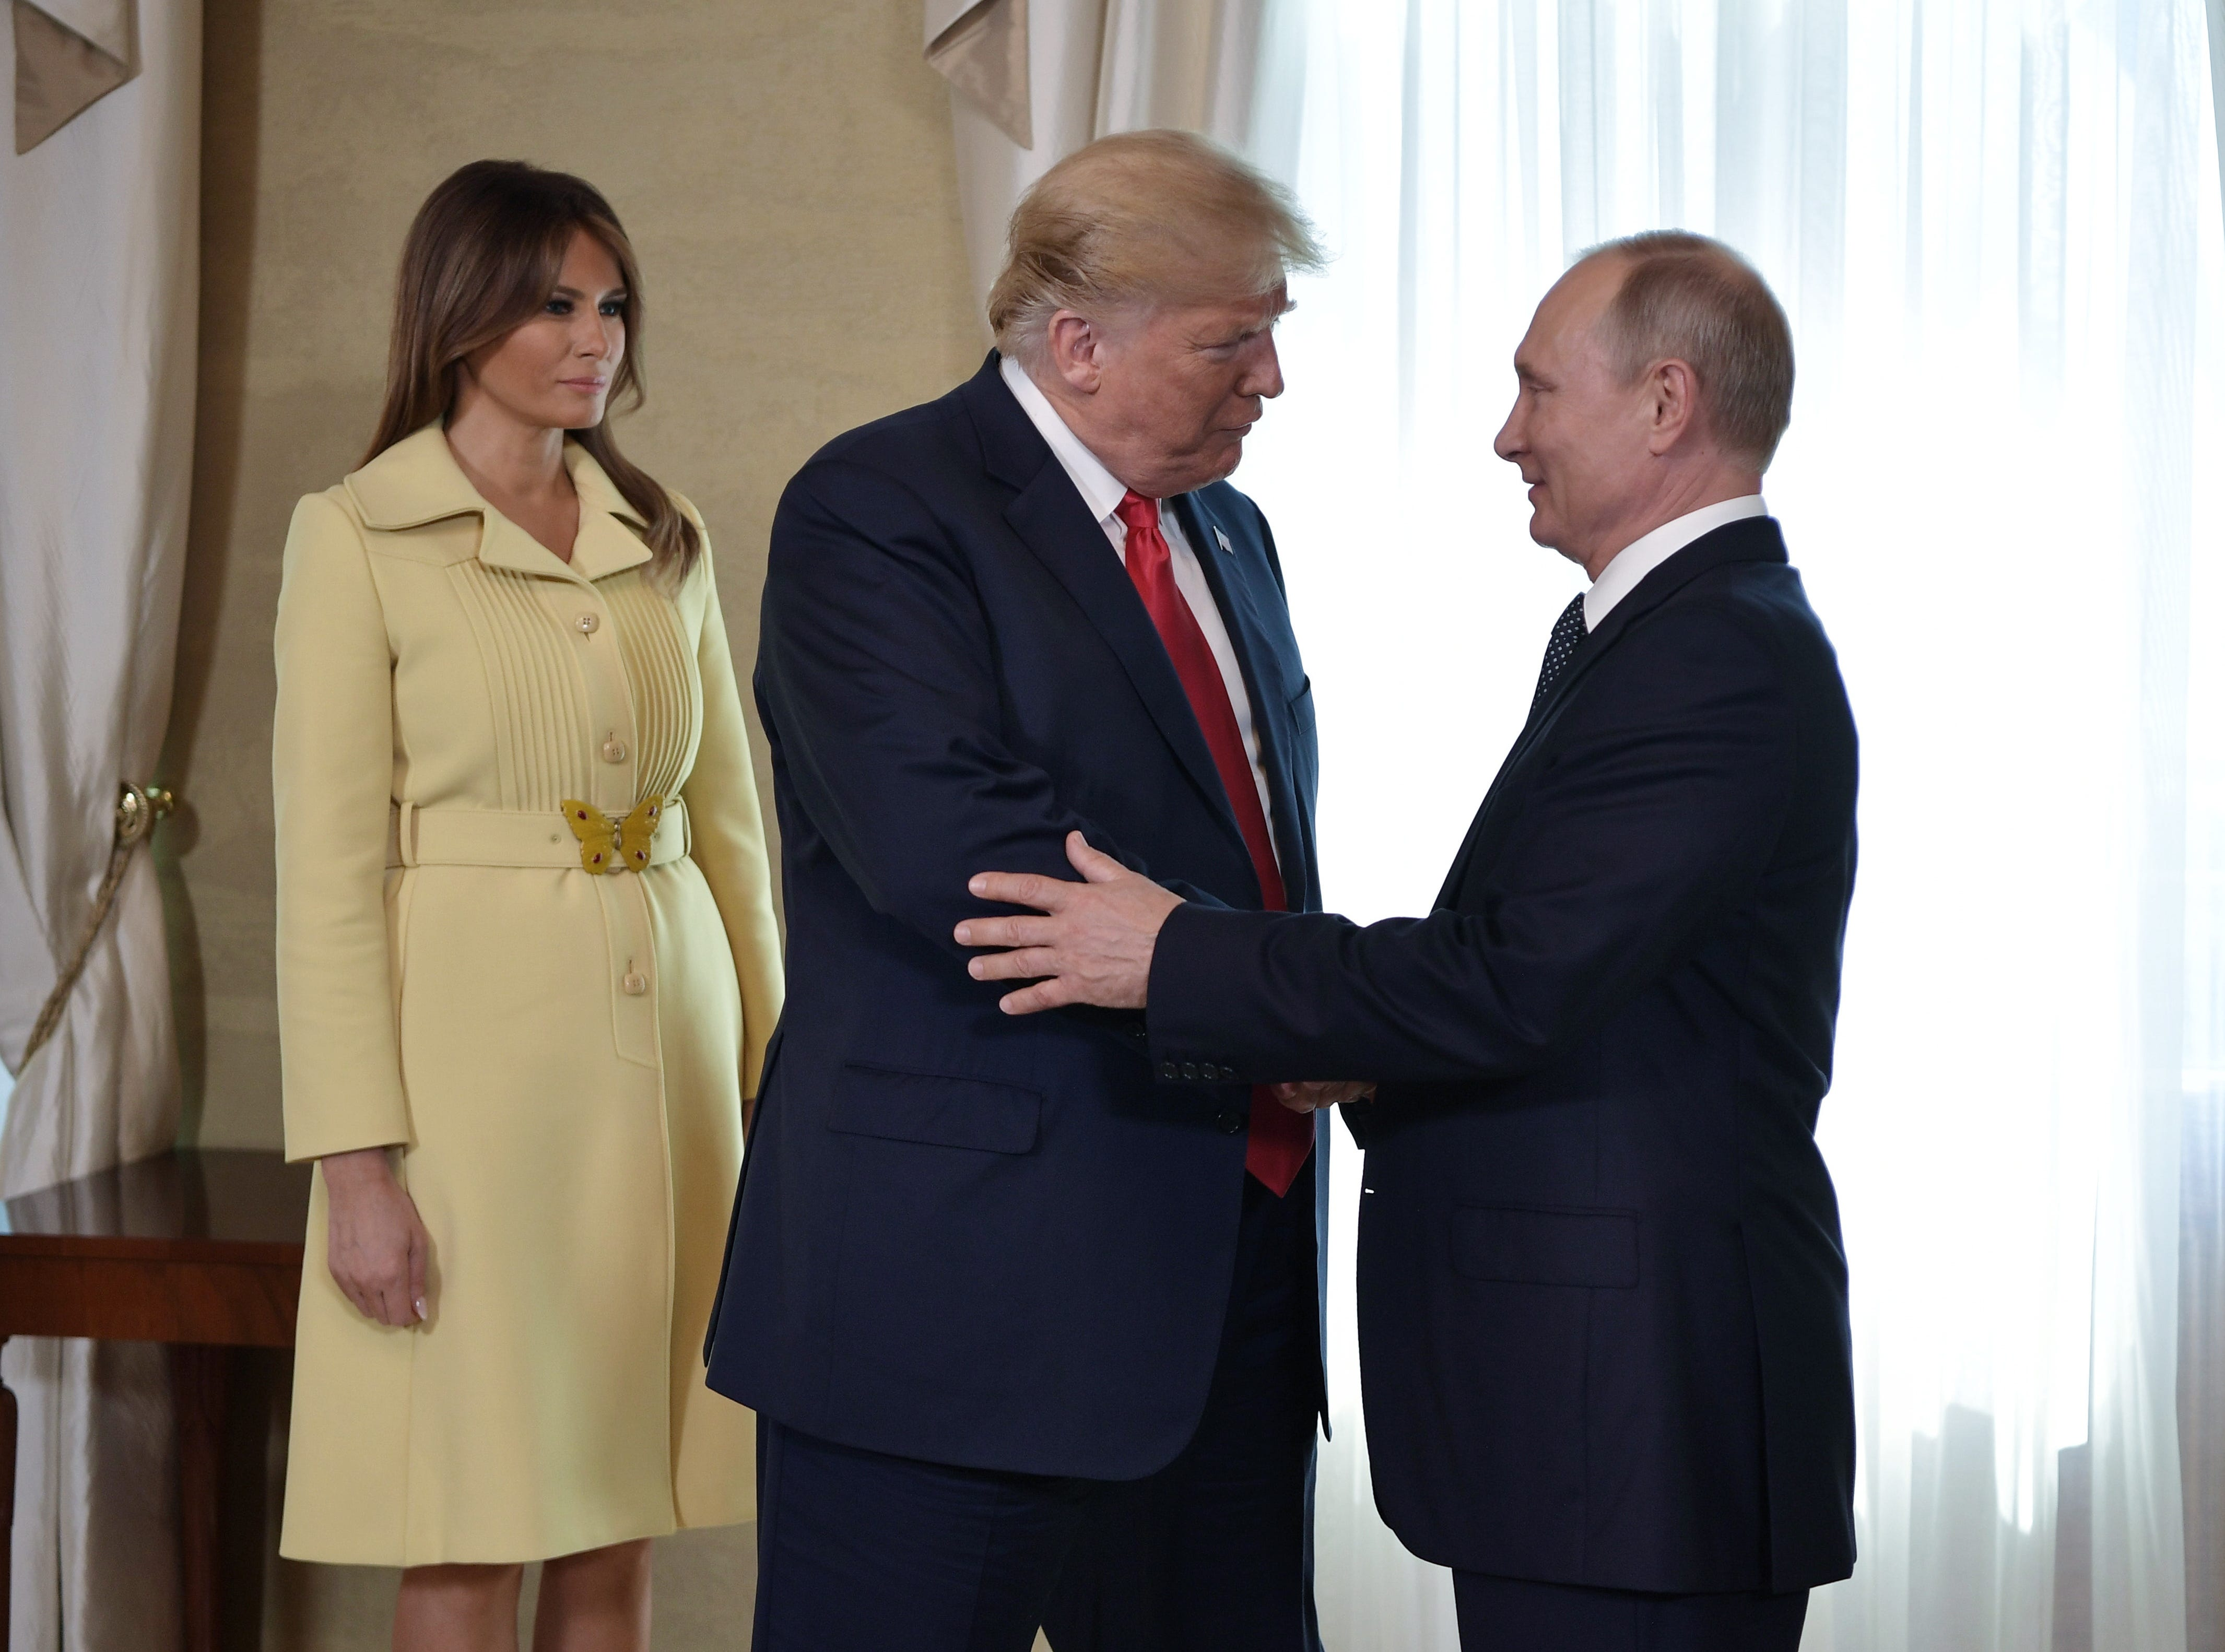 Russian President Vladimir Putin and  US President Donald J. Trump shake hands  as First Lady Melania Trump looks on during their meeting at the Presidential Palace in Helsinki, Finland on July 16, 2018.